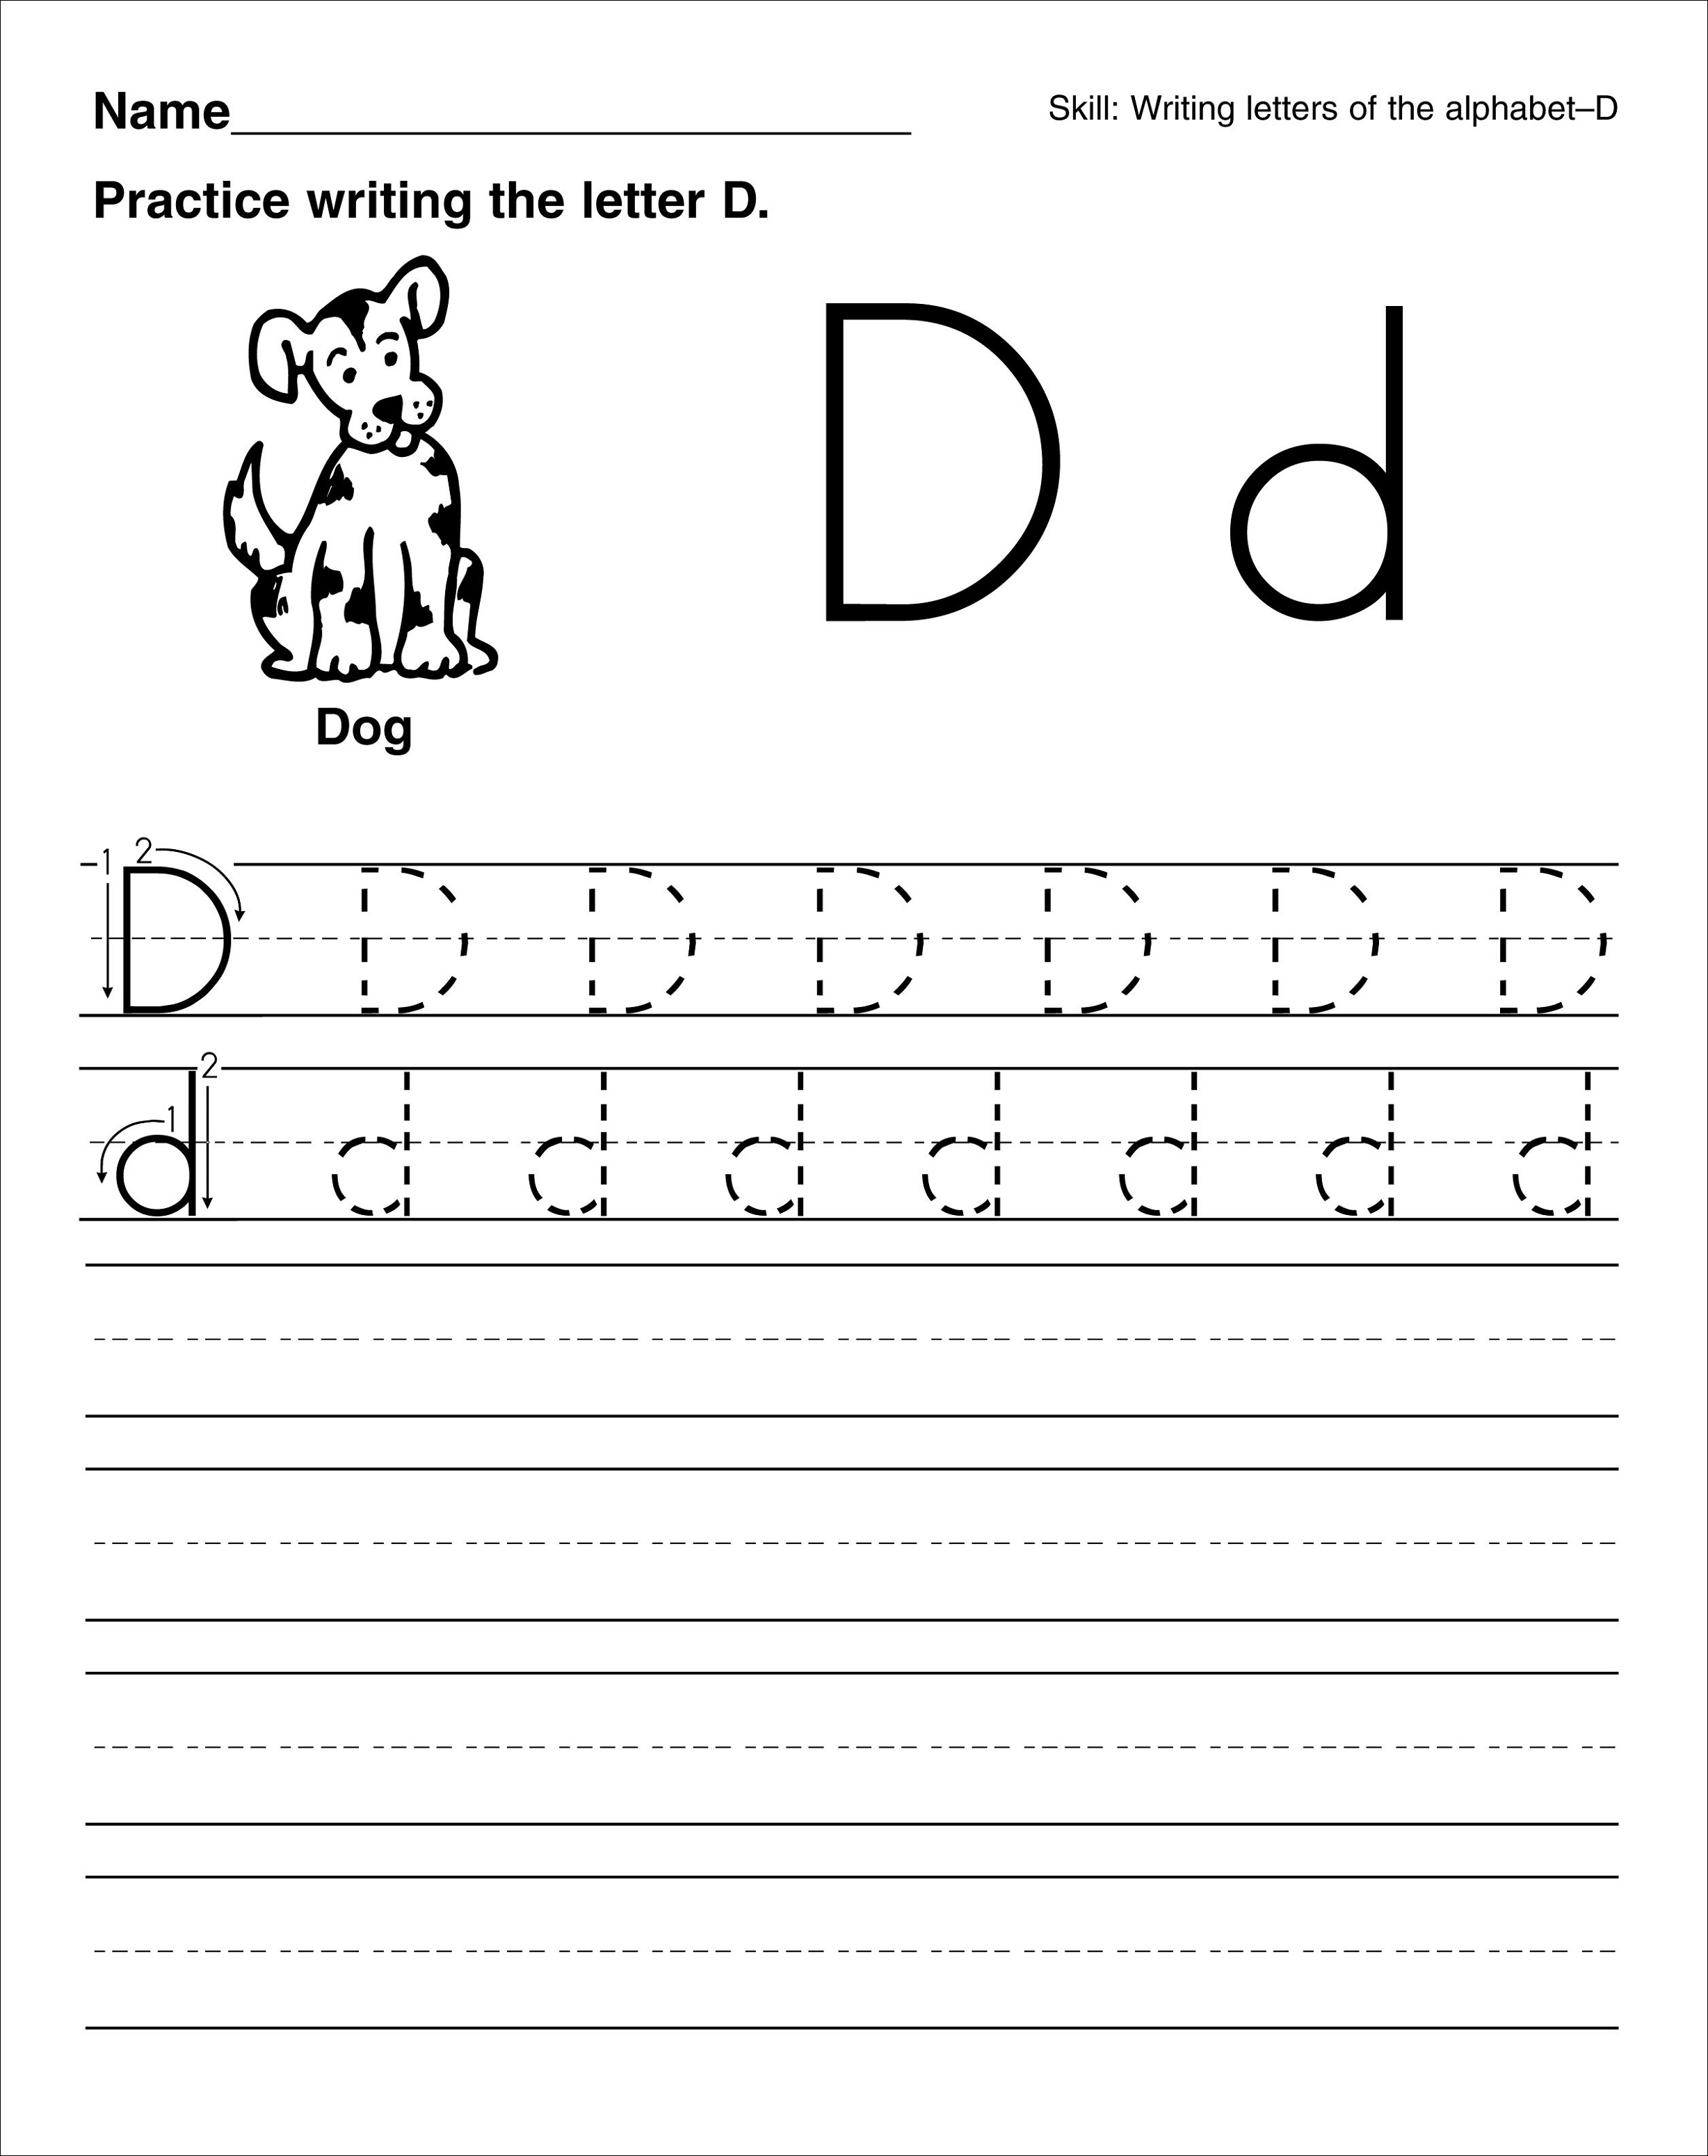 Uncategorized Letter D Worksheet trace letter d worksheets activity shelter for dog